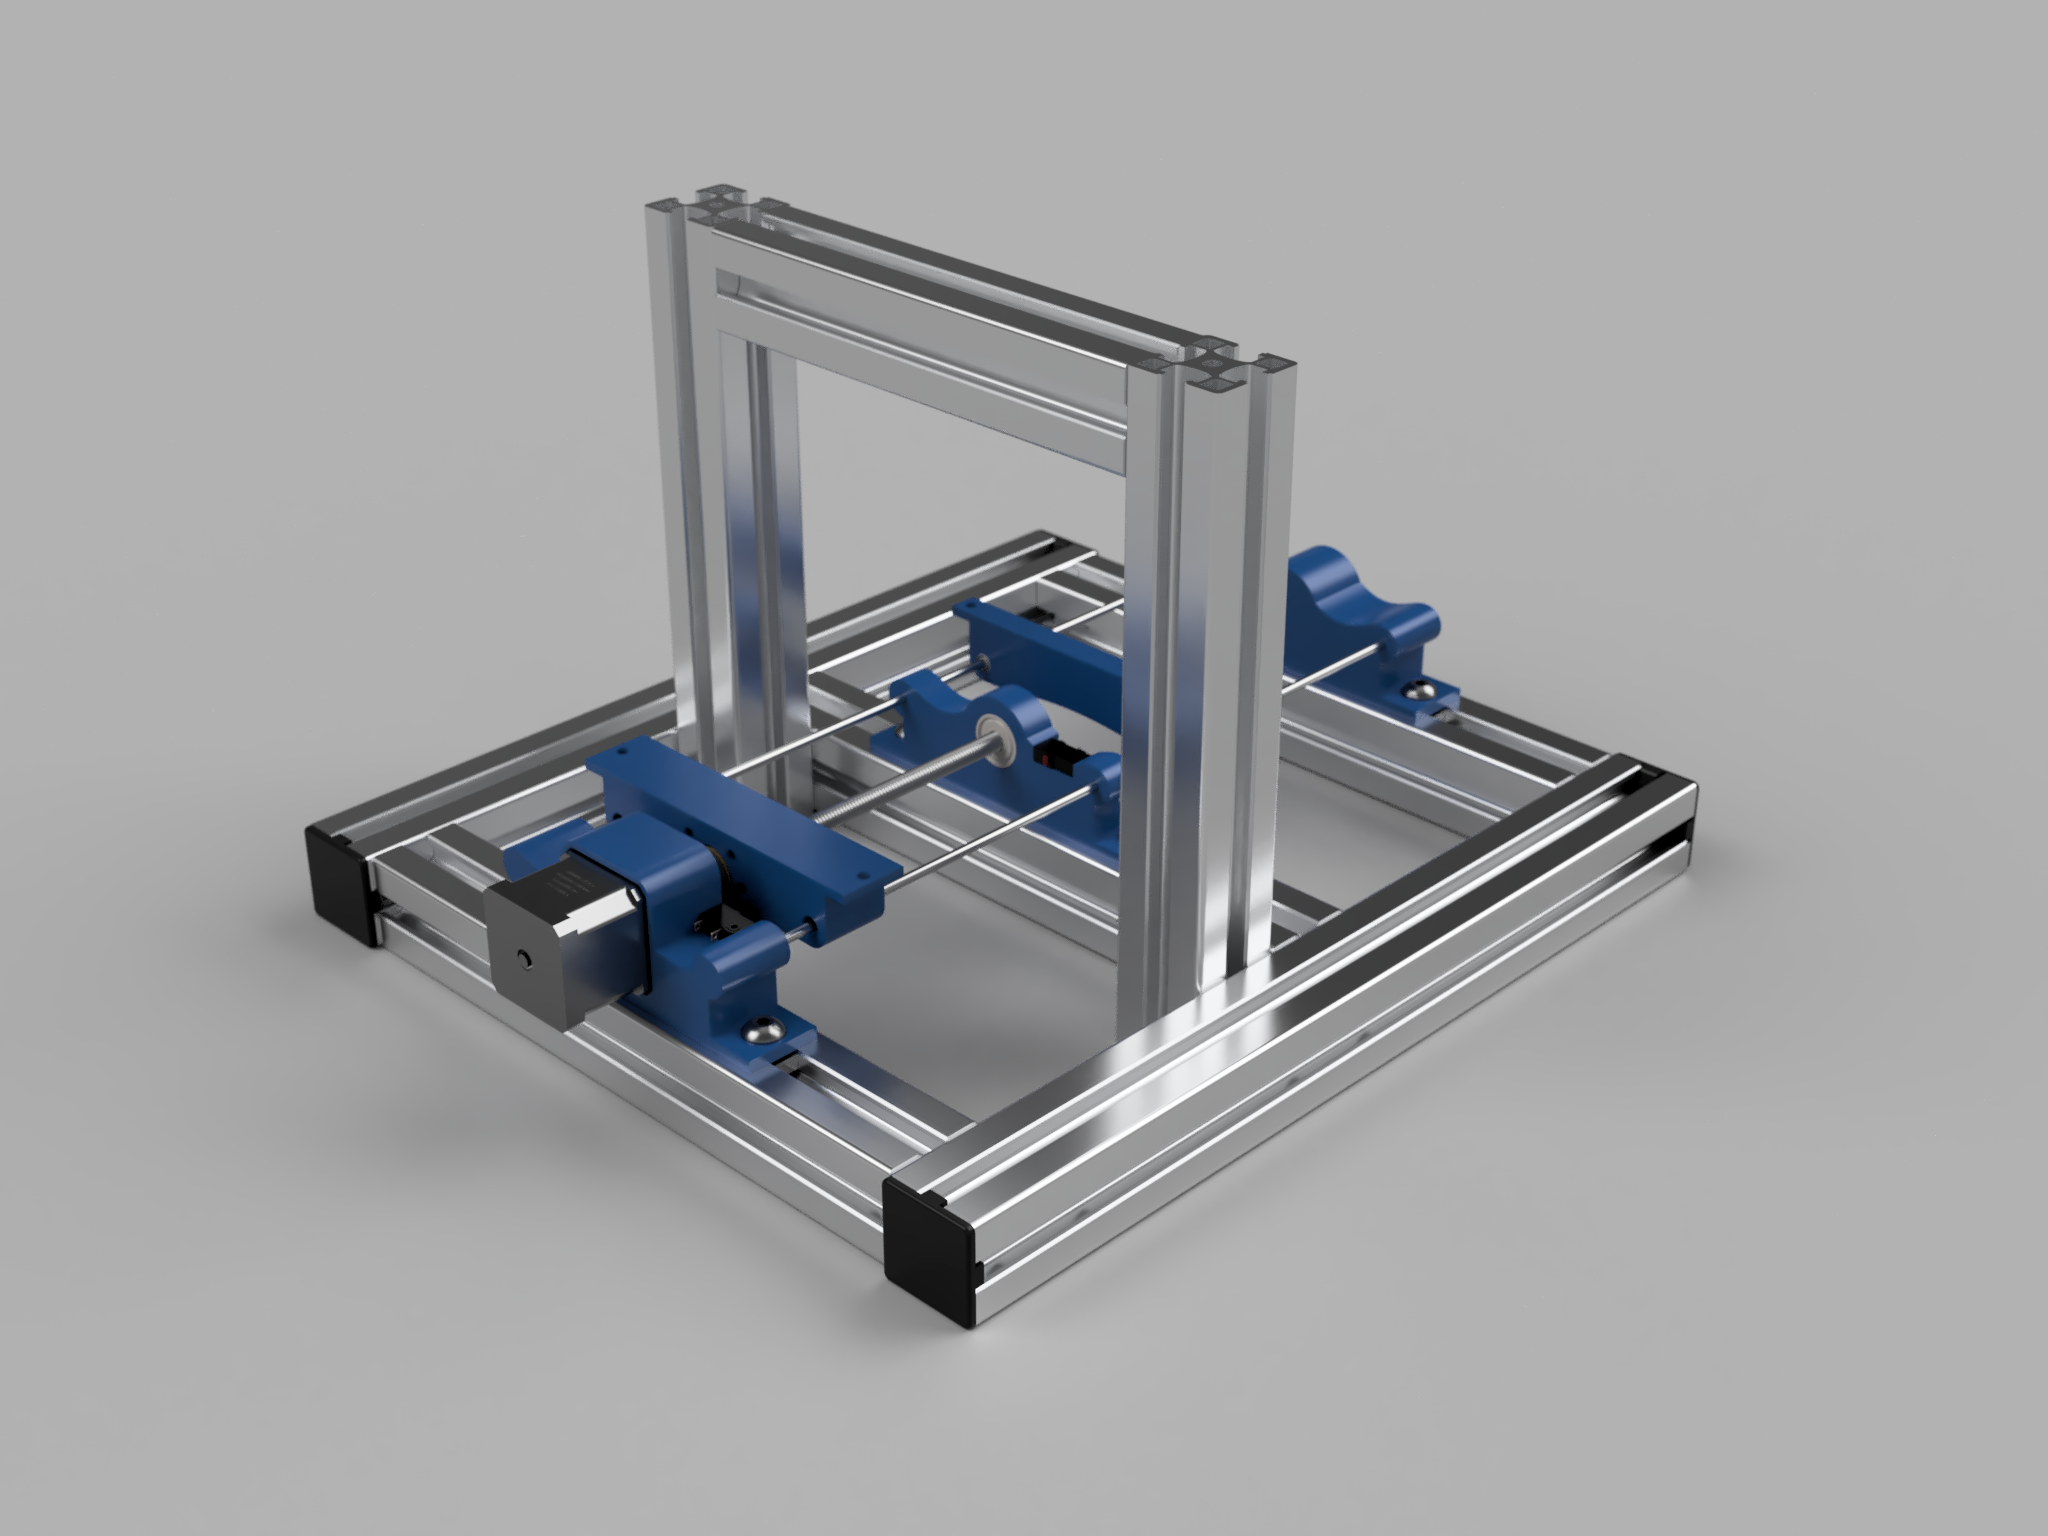 A render of the new Y-Axis